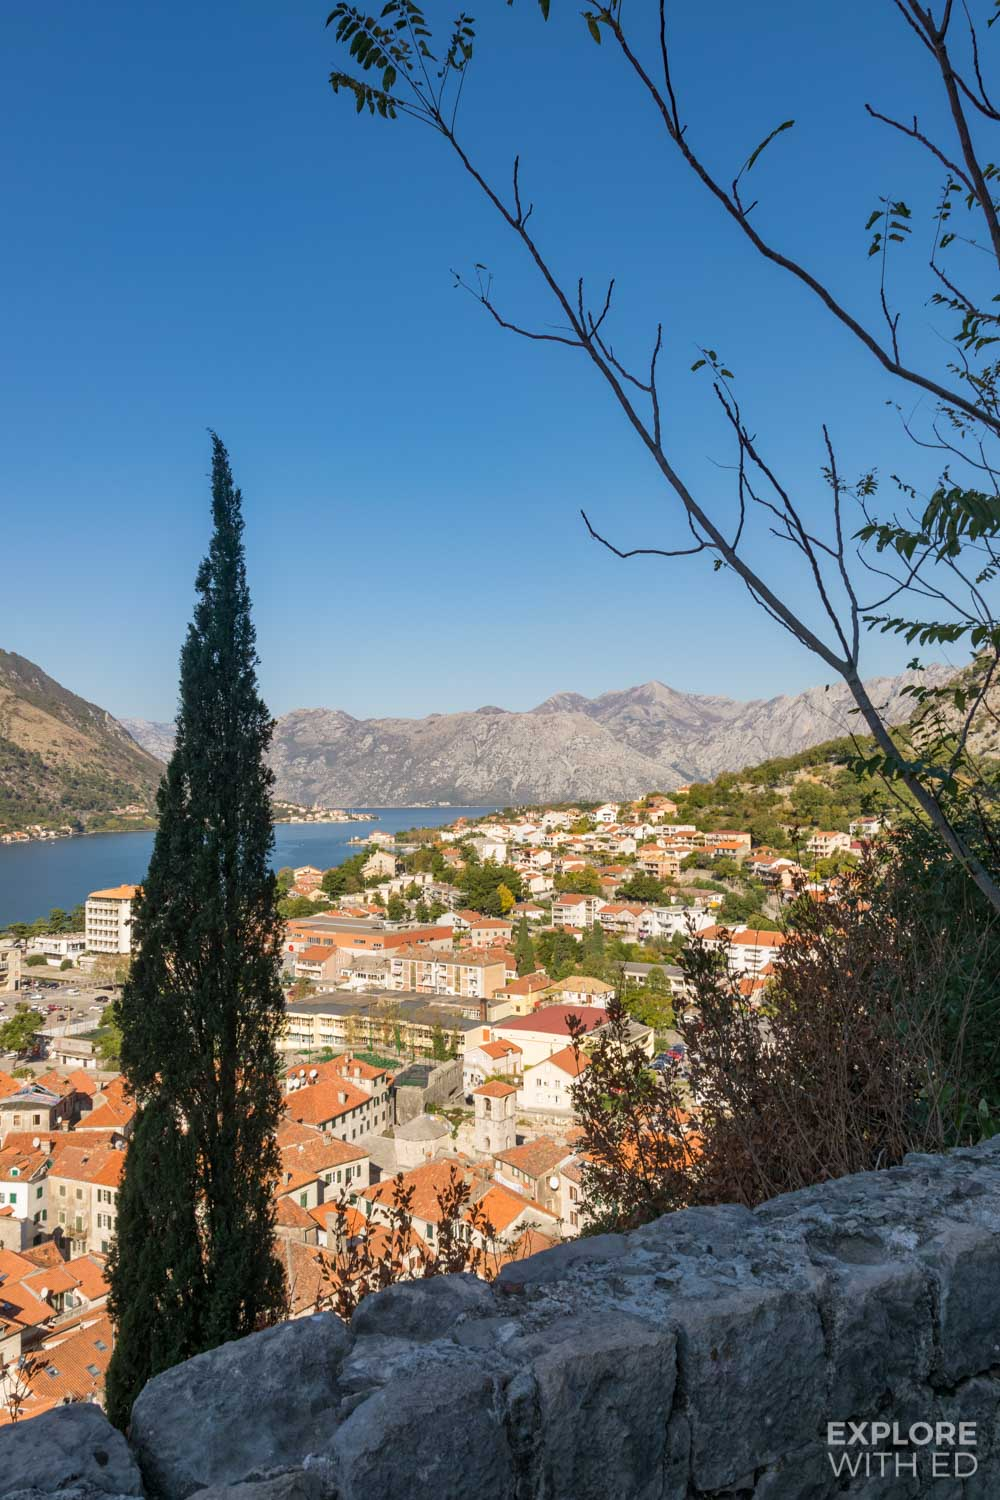 View over Kotor Bay from the hill side